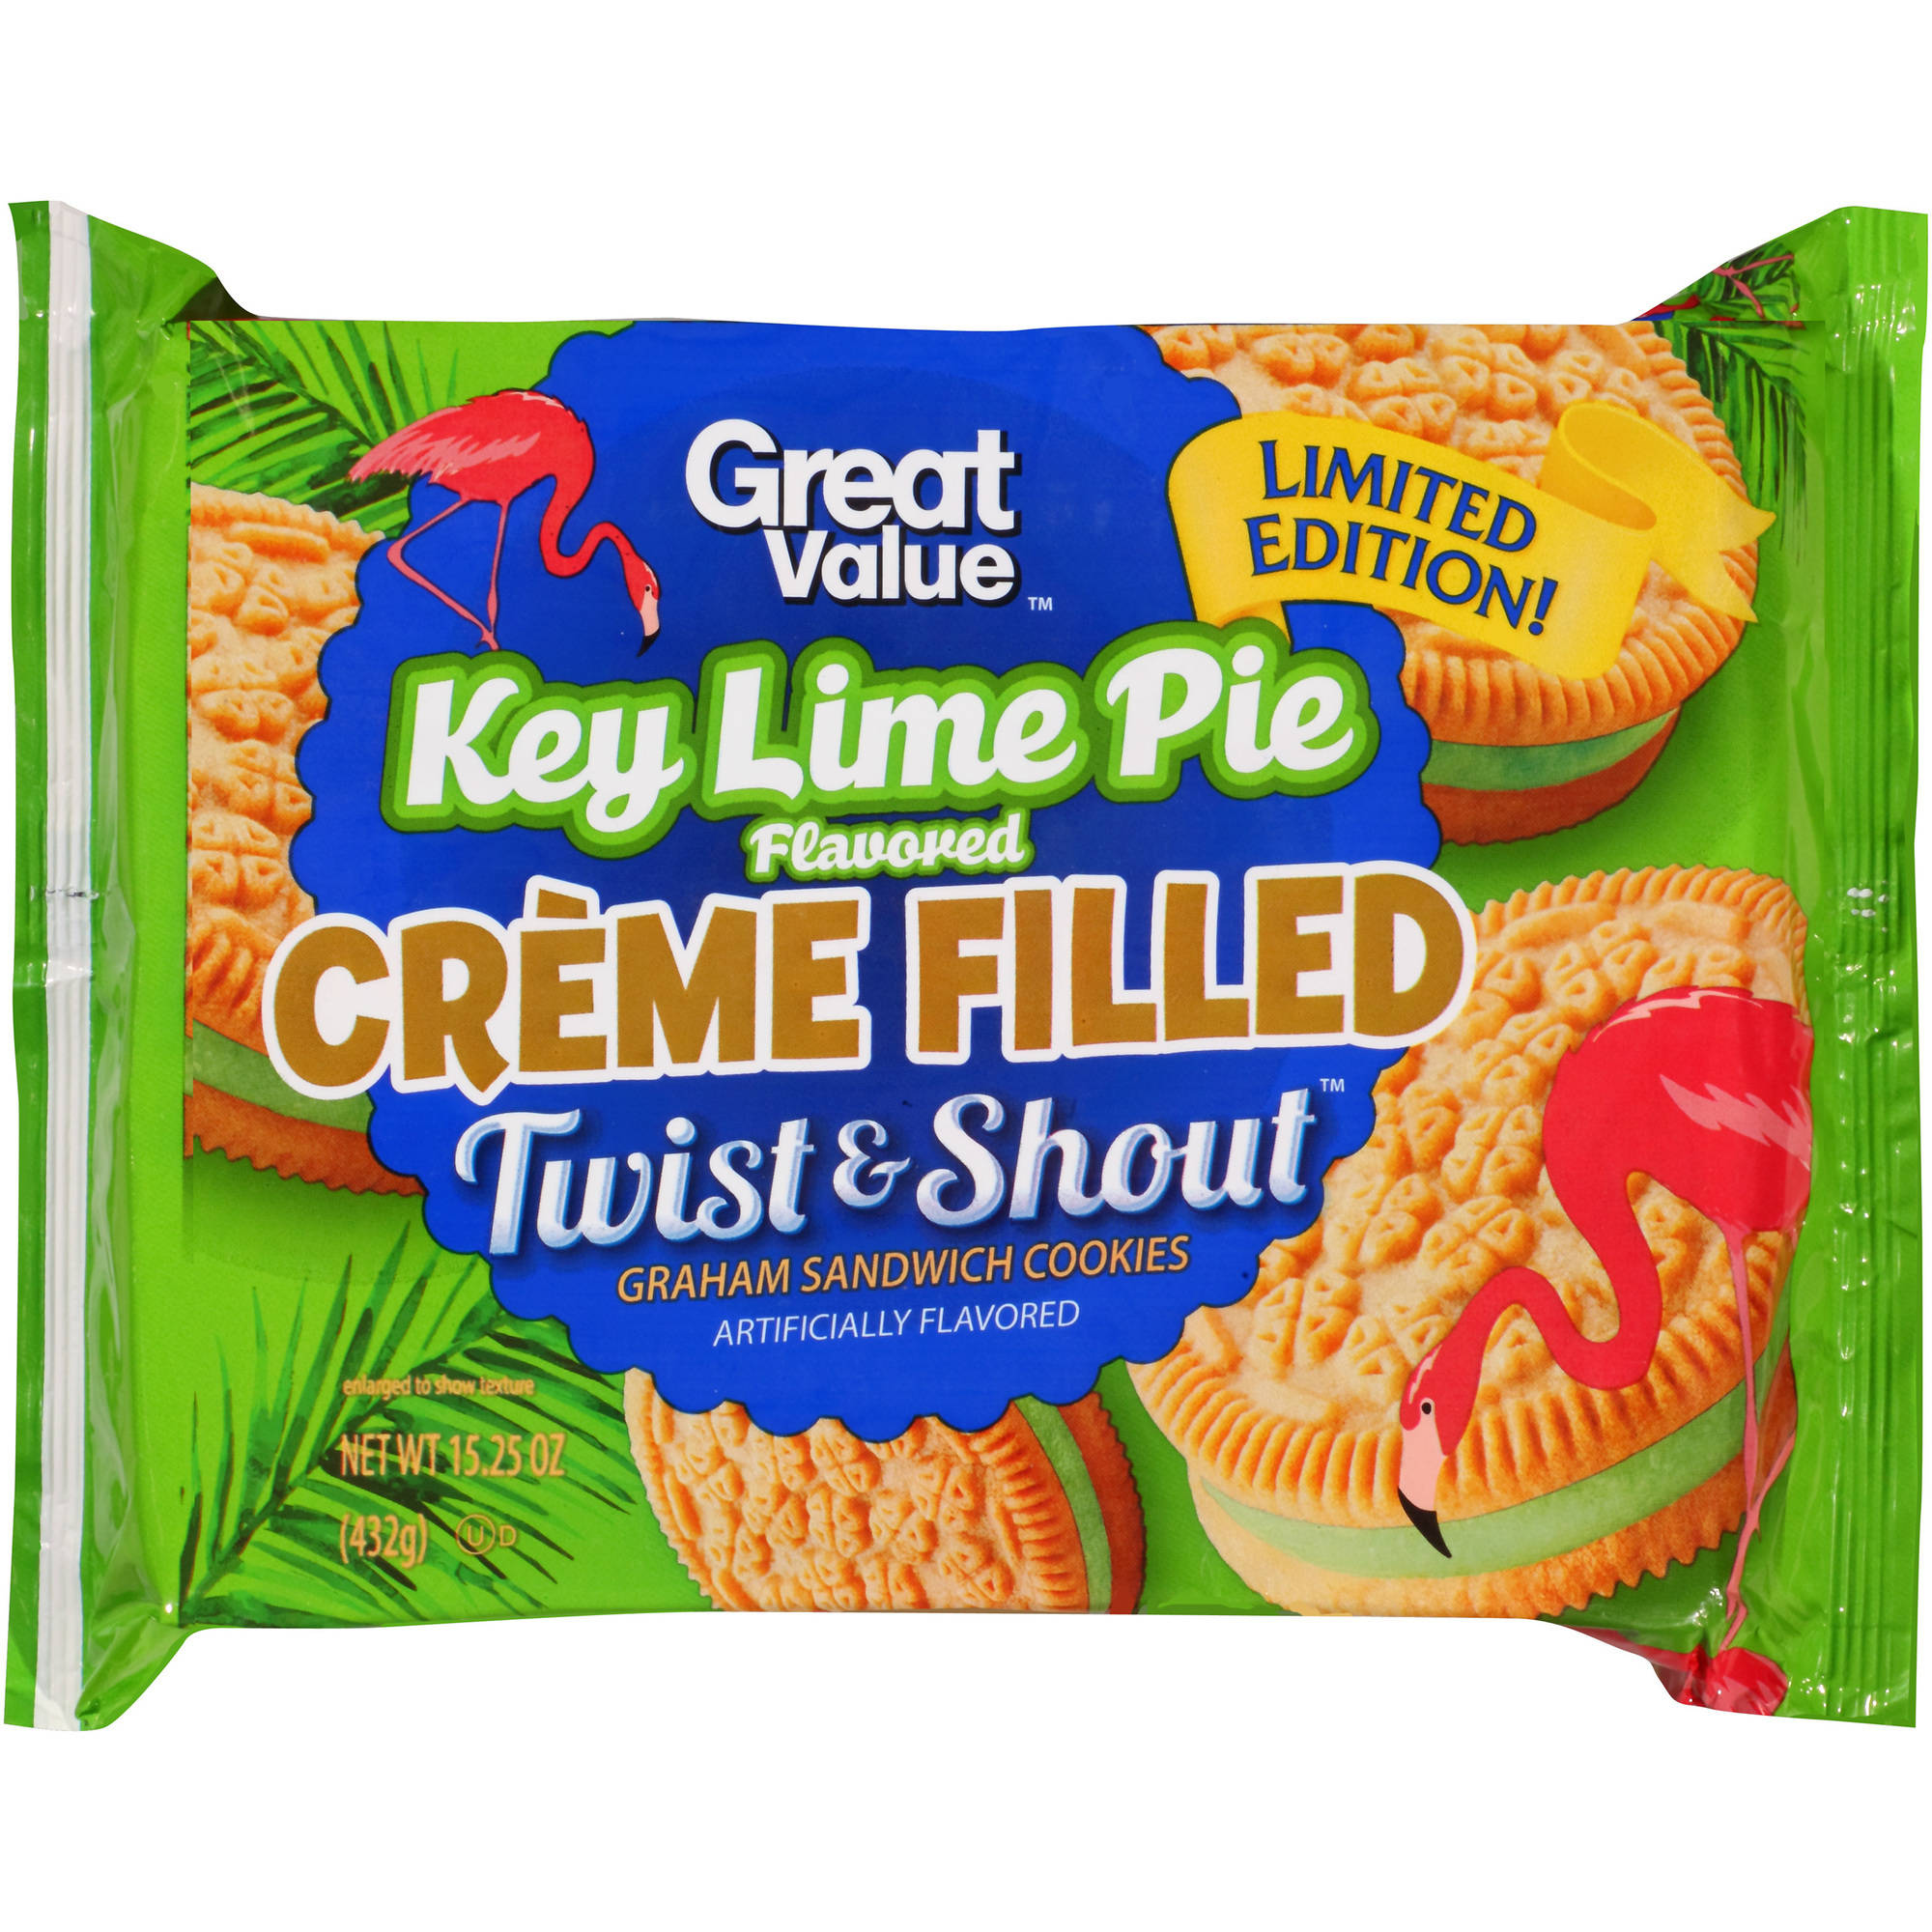 Great Value Twist & Shout Key Lime Pie Flavored Creme Filled Graham Sandwich Cookies, 15.25 oz